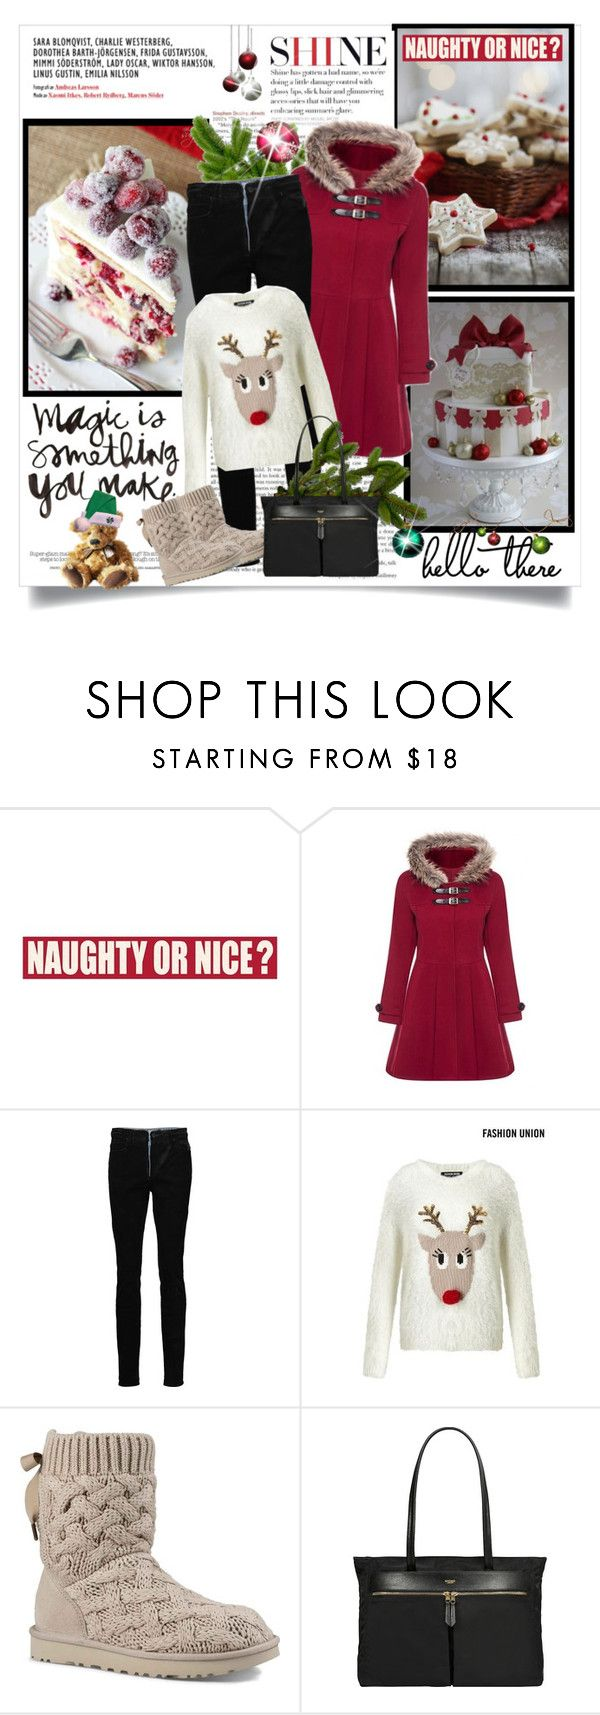 """""""Have You Been Naughty or Nice?"""" by likepolyfashion ❤ liked on Polyvore featuring Sixtrees, Alexander Wang, Fashion Union, UGG, Knomo, Holidaygifts and wintersweater"""